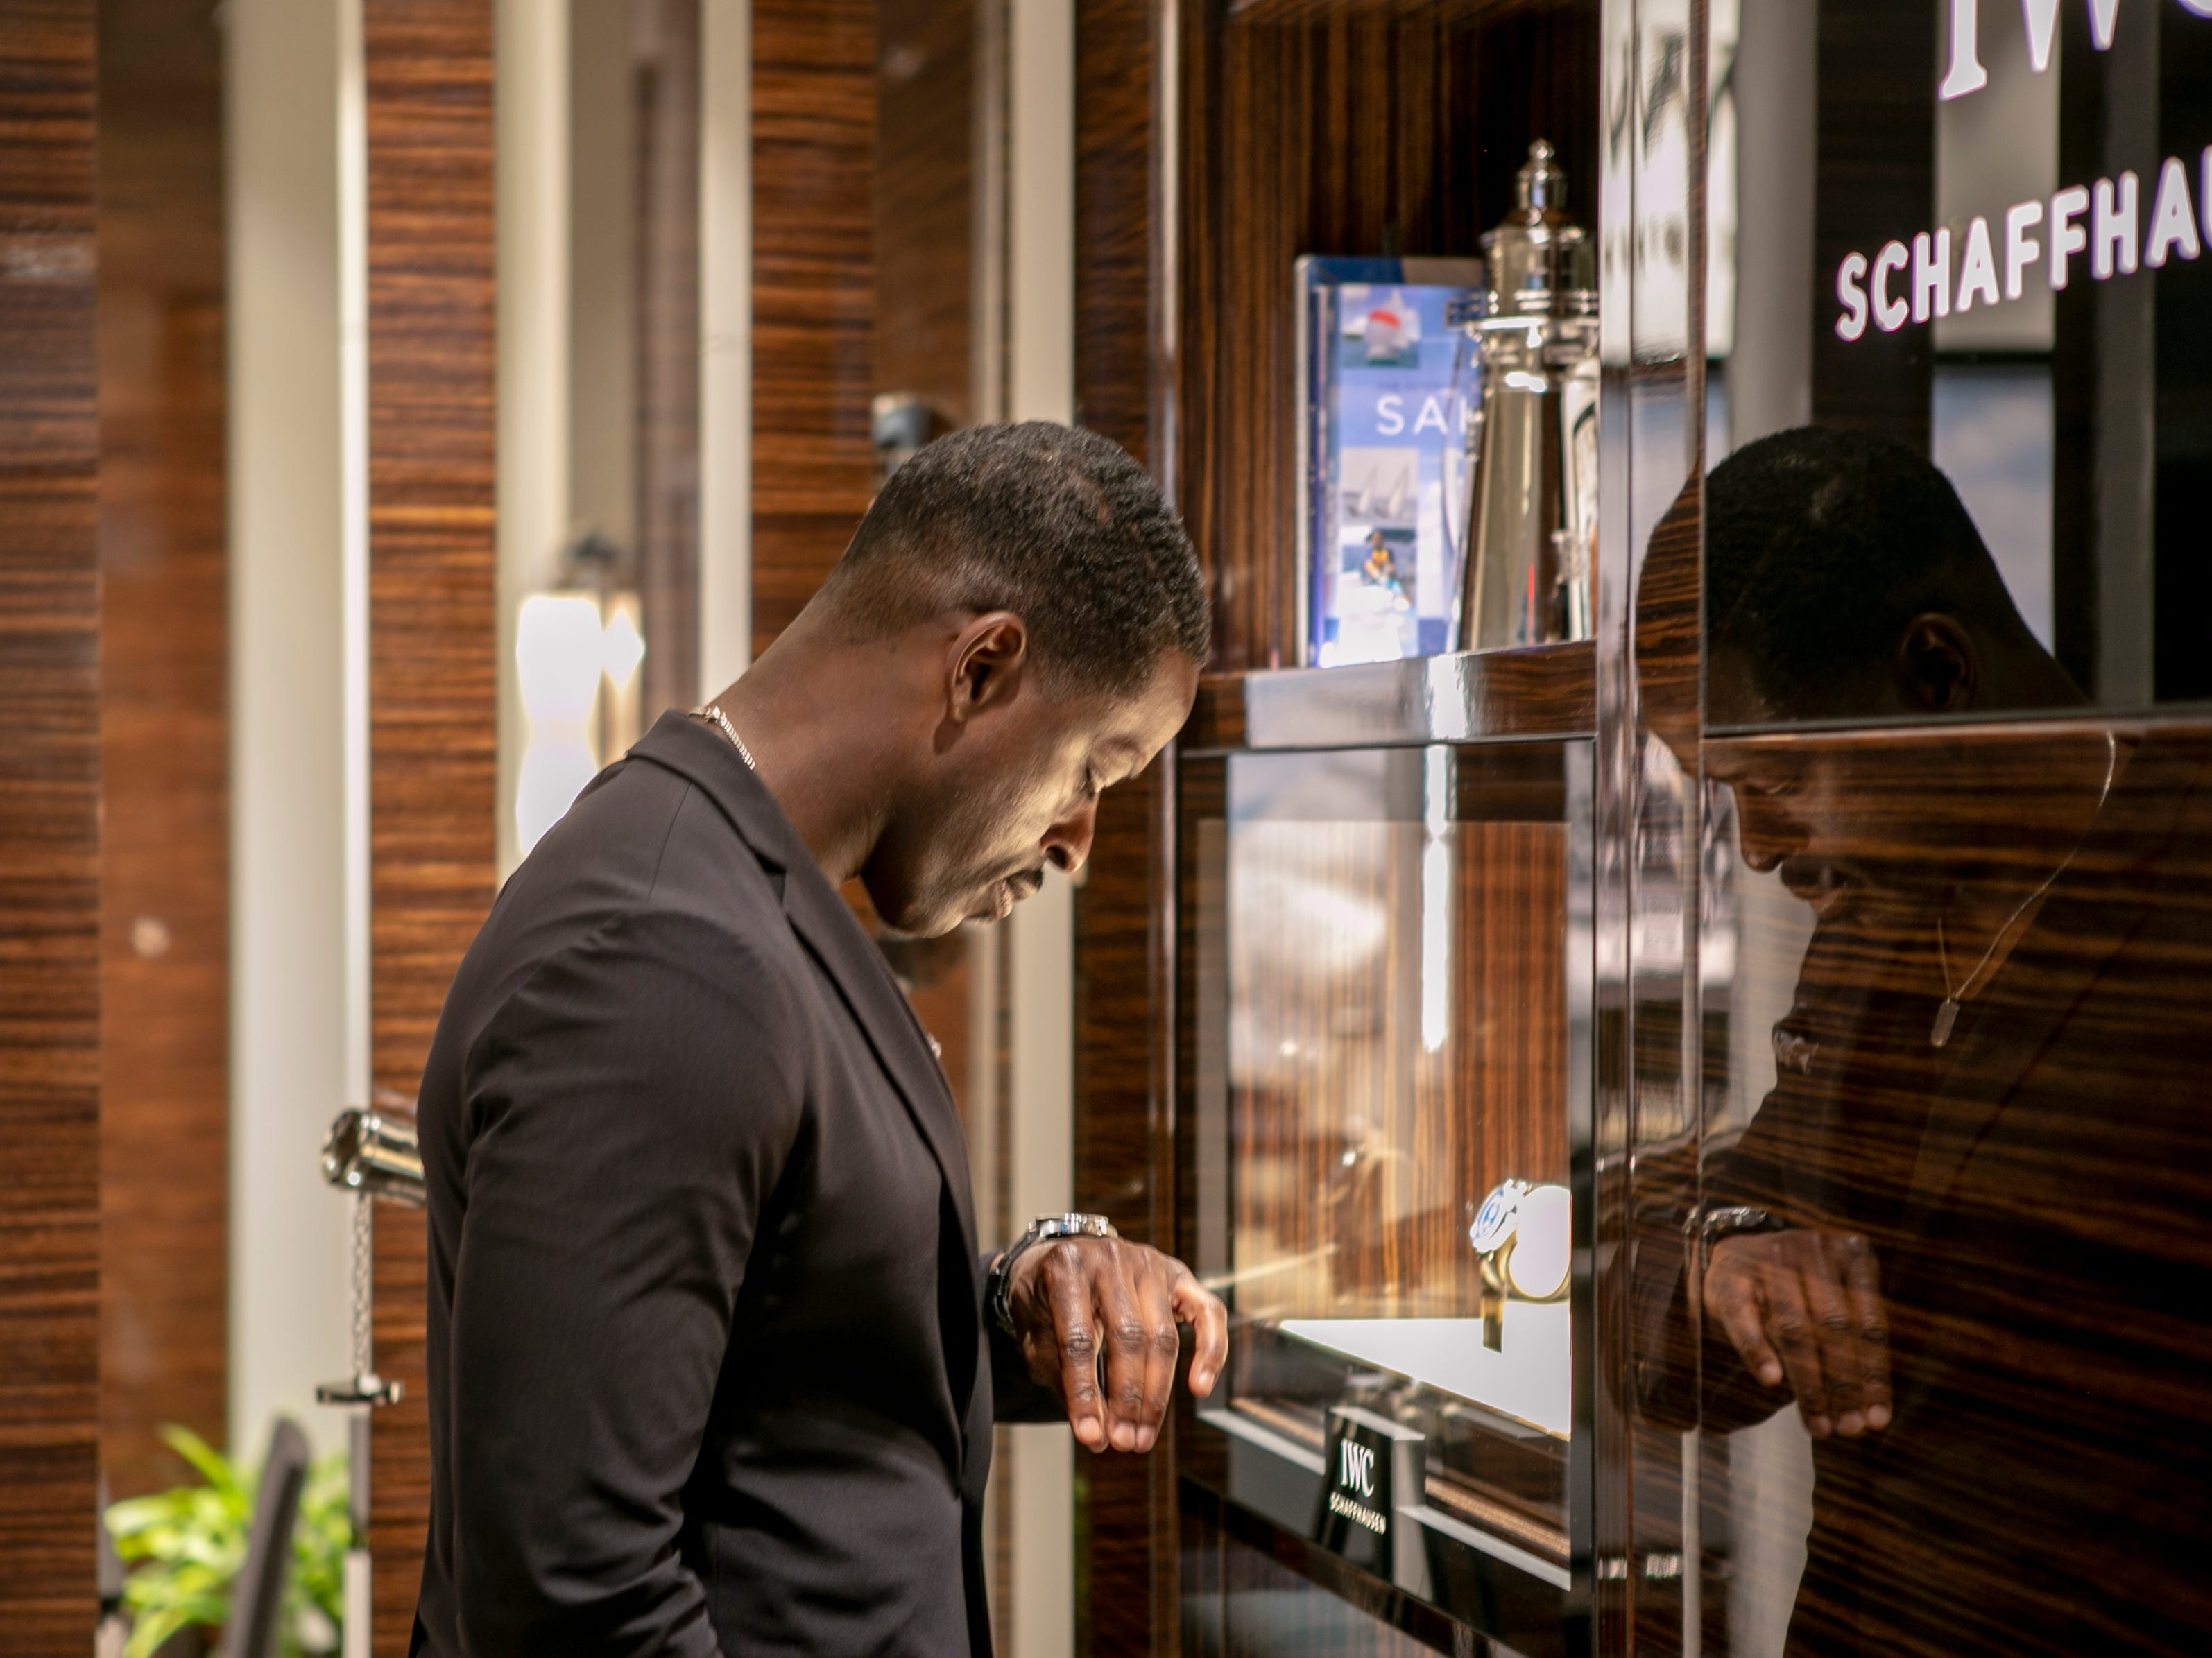 Emmy award-winning actor Sterling K. Brown at IWC Schaffhausen's launch party for the Spitfire collection at the Scottsdale Fashion Square, Thursday, April 25, 2019.